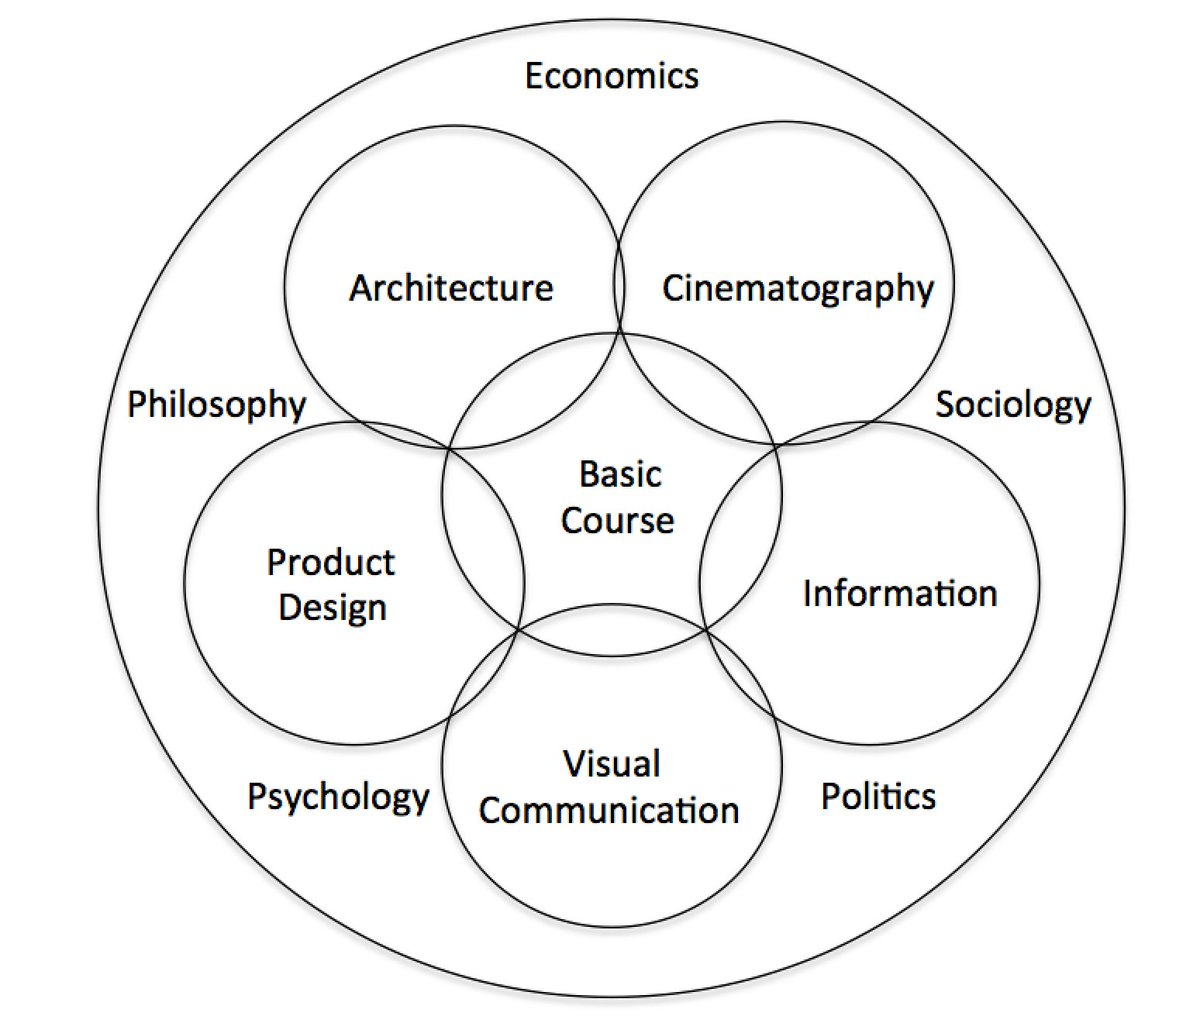 hight resolution of this is ulm s curriculum diagram an evolution that includes very human elements that affect design decisions psychology philosophy economics politics